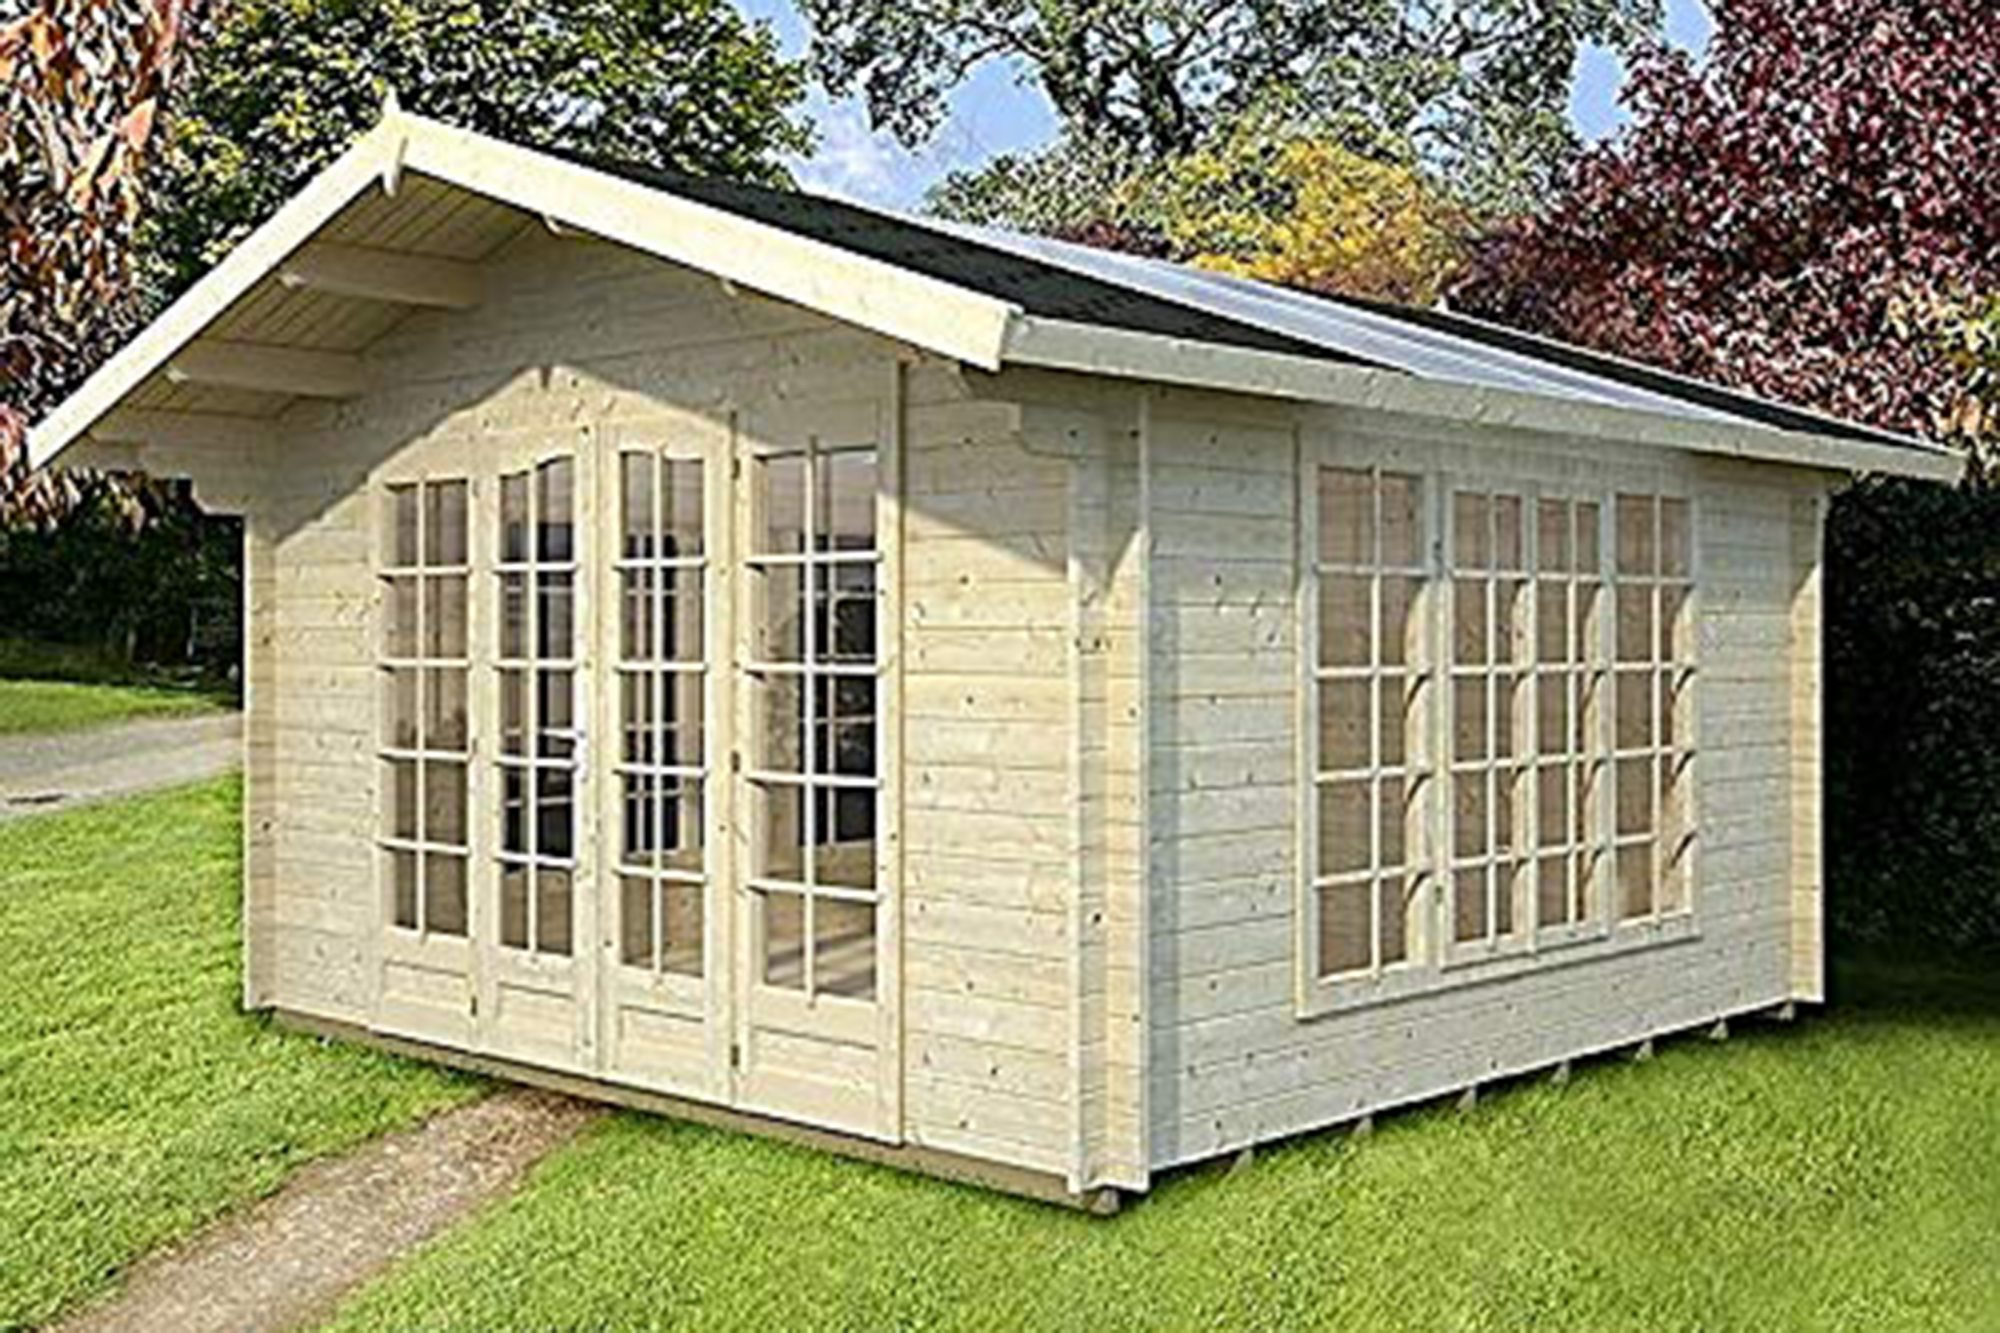 Yes, You Can Buy a Tiny House on Amazon for $3,000 — Here Are 12 Easy DIY Kits to Shop Now